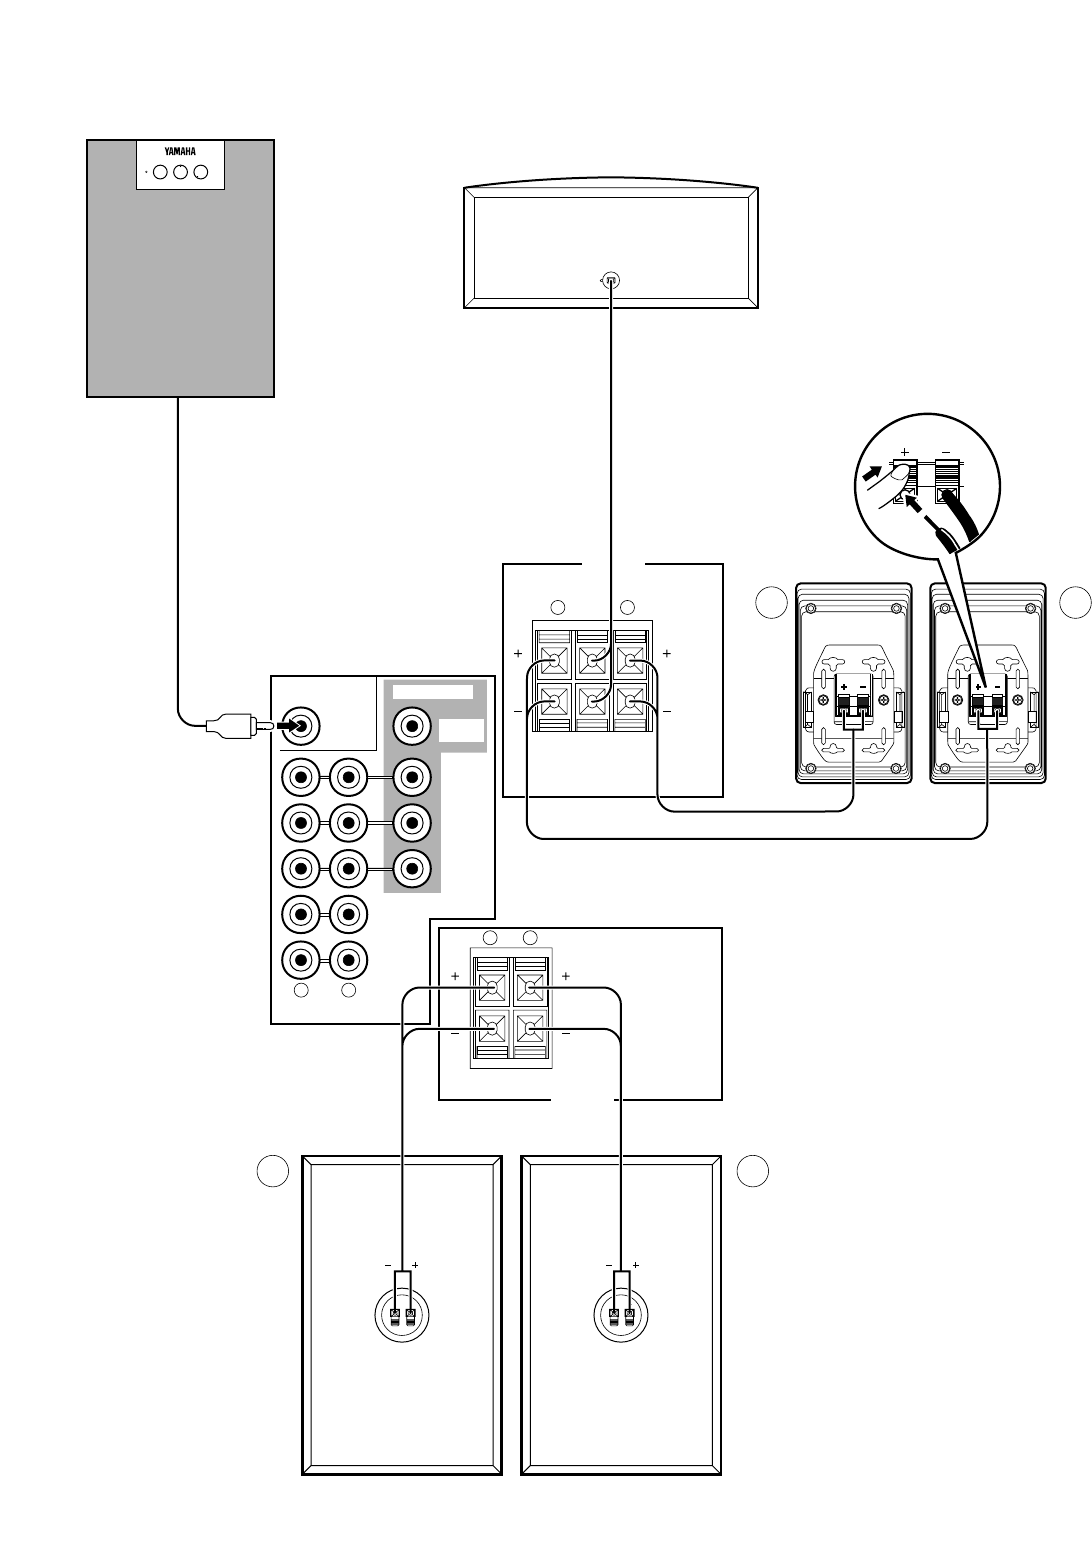 Page 10 of Yamaha Speaker System GX-70 User Guide